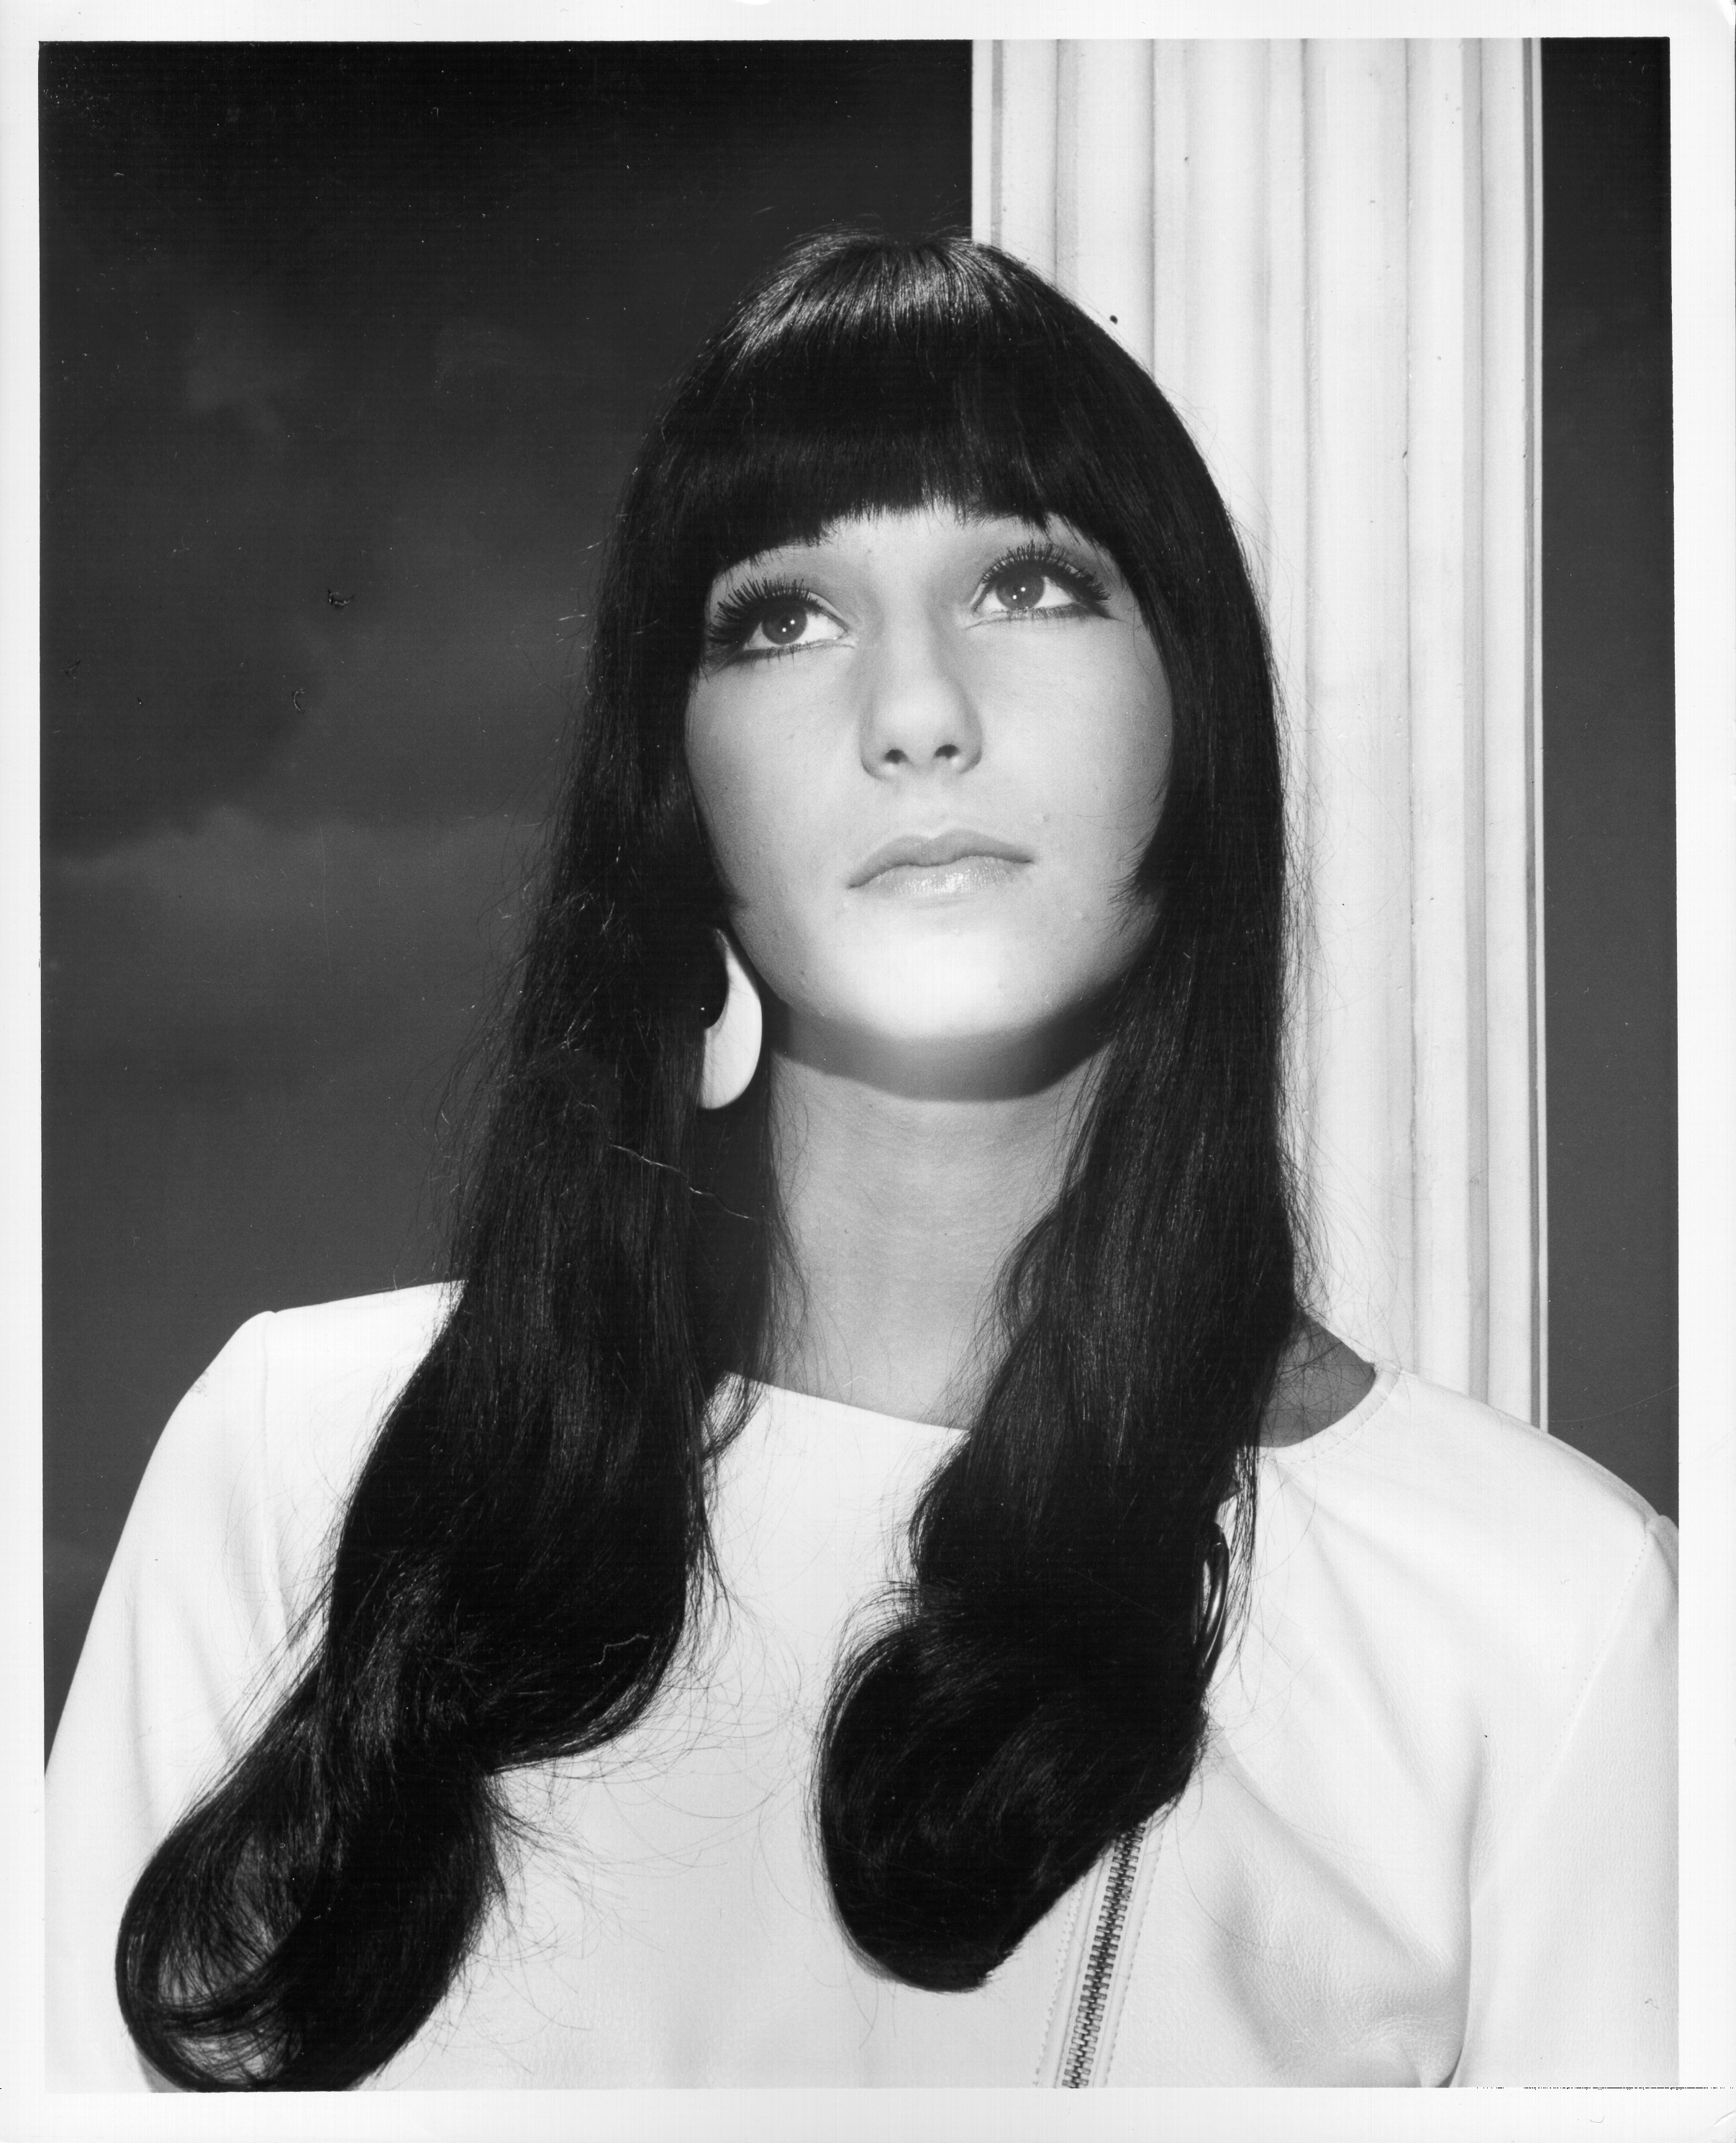 1963: Photo of Black & White Cher, Los Angeles circa 1963. (Photo by Michael Ochs Archives/Getty Images)